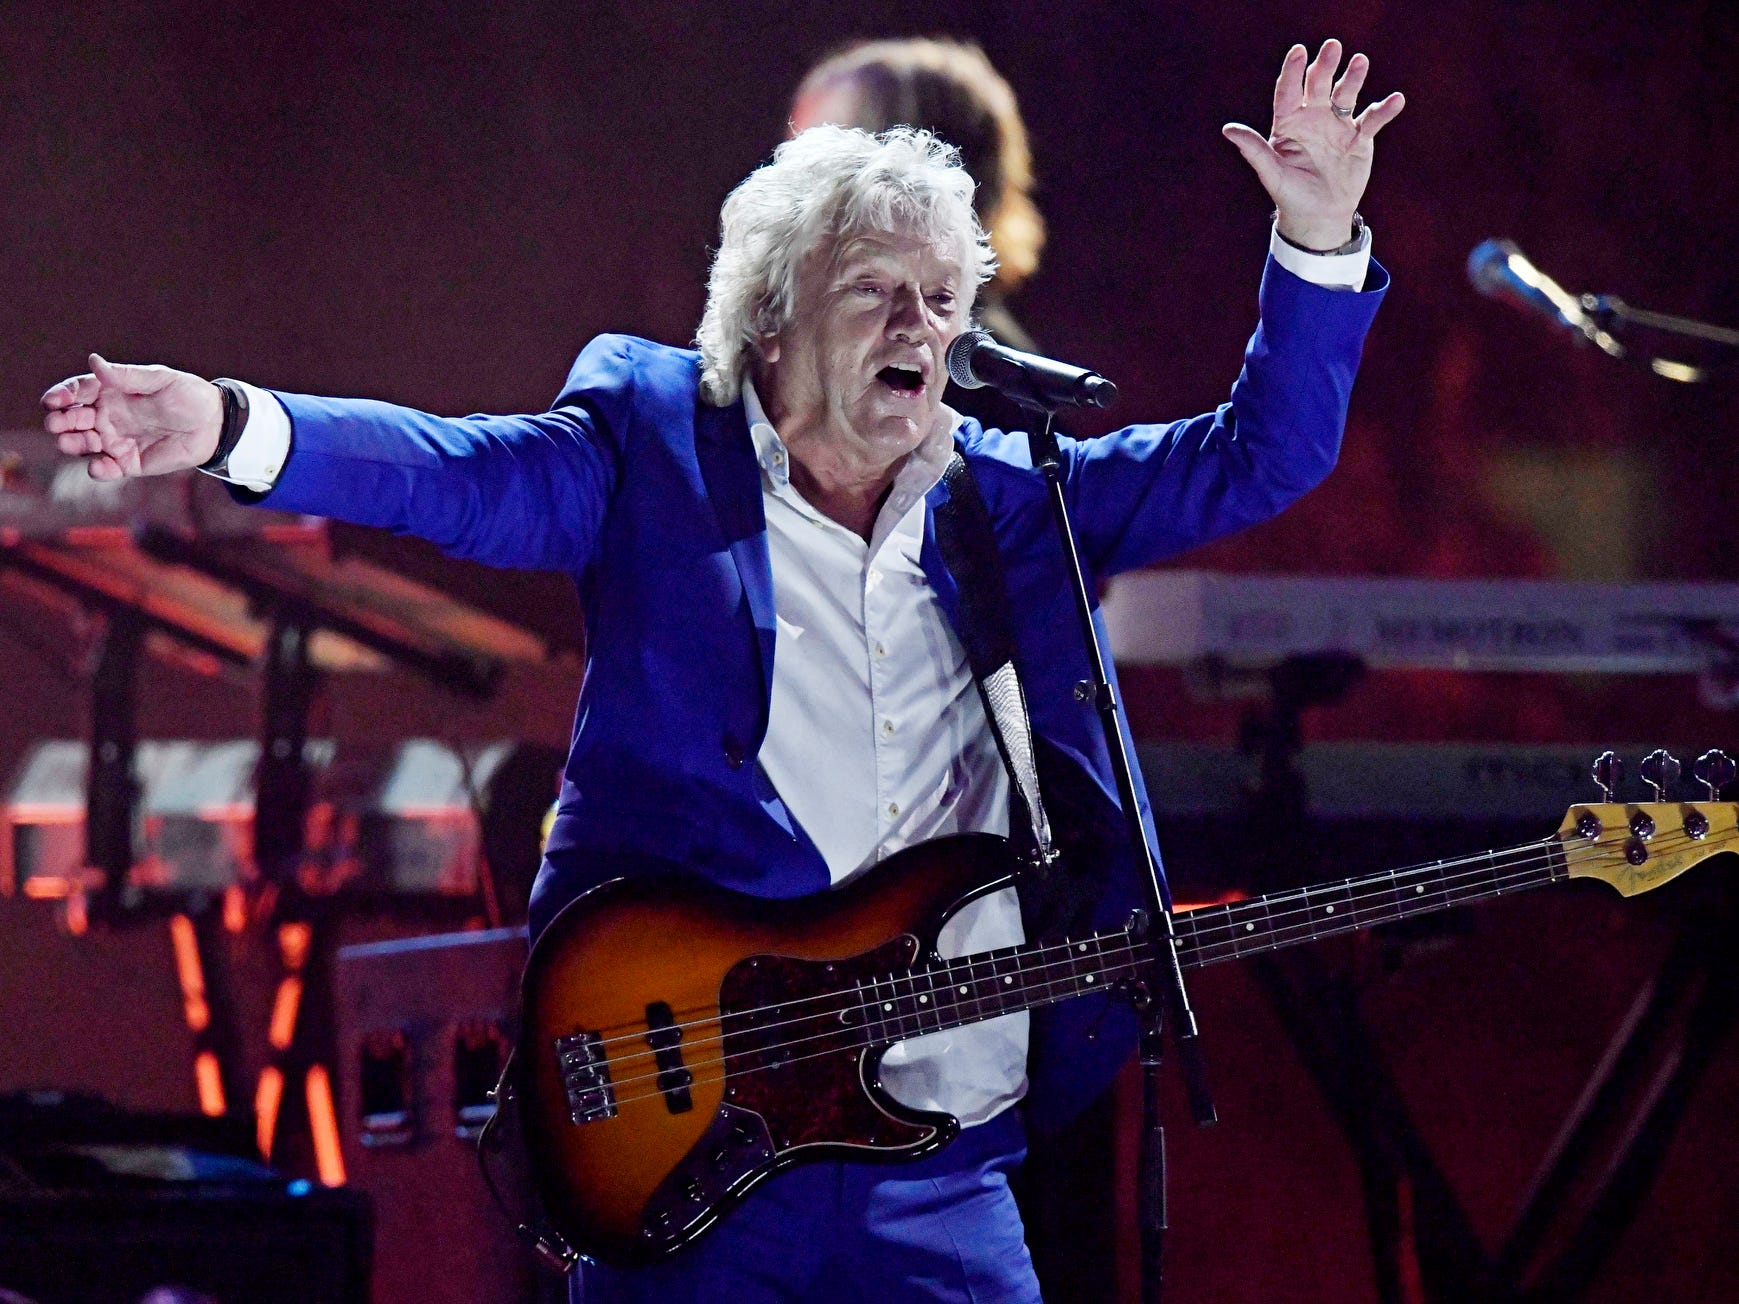 OCT. 12 THE MOODY BLUES' JOHN LODGE: 8 p.m. City Winery, $40-$60, citywinery.com/nashville